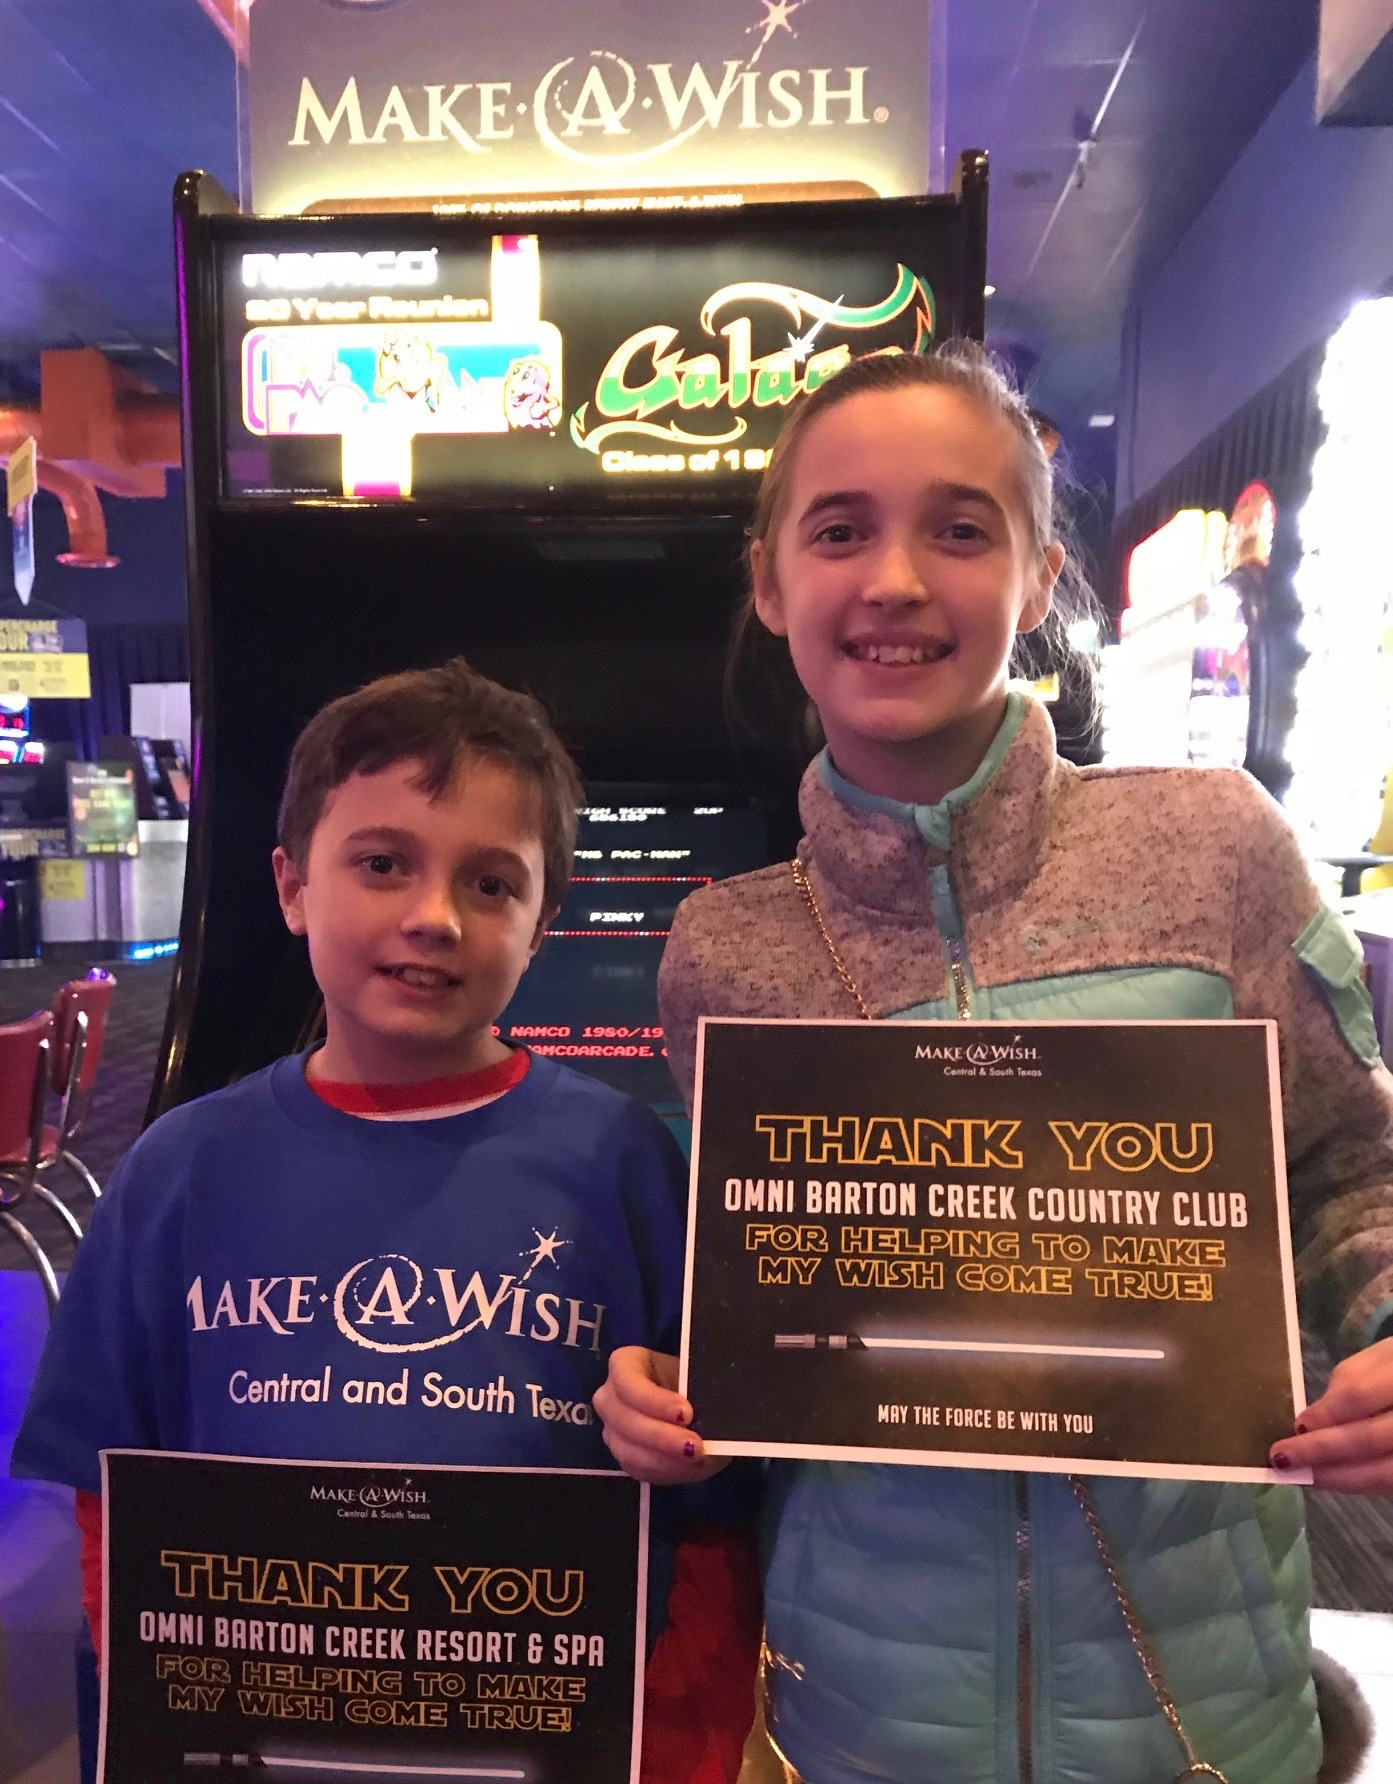 Graham and his sister celebrate his selection as Make-A-Wish beneficiary of Disney World Trip…